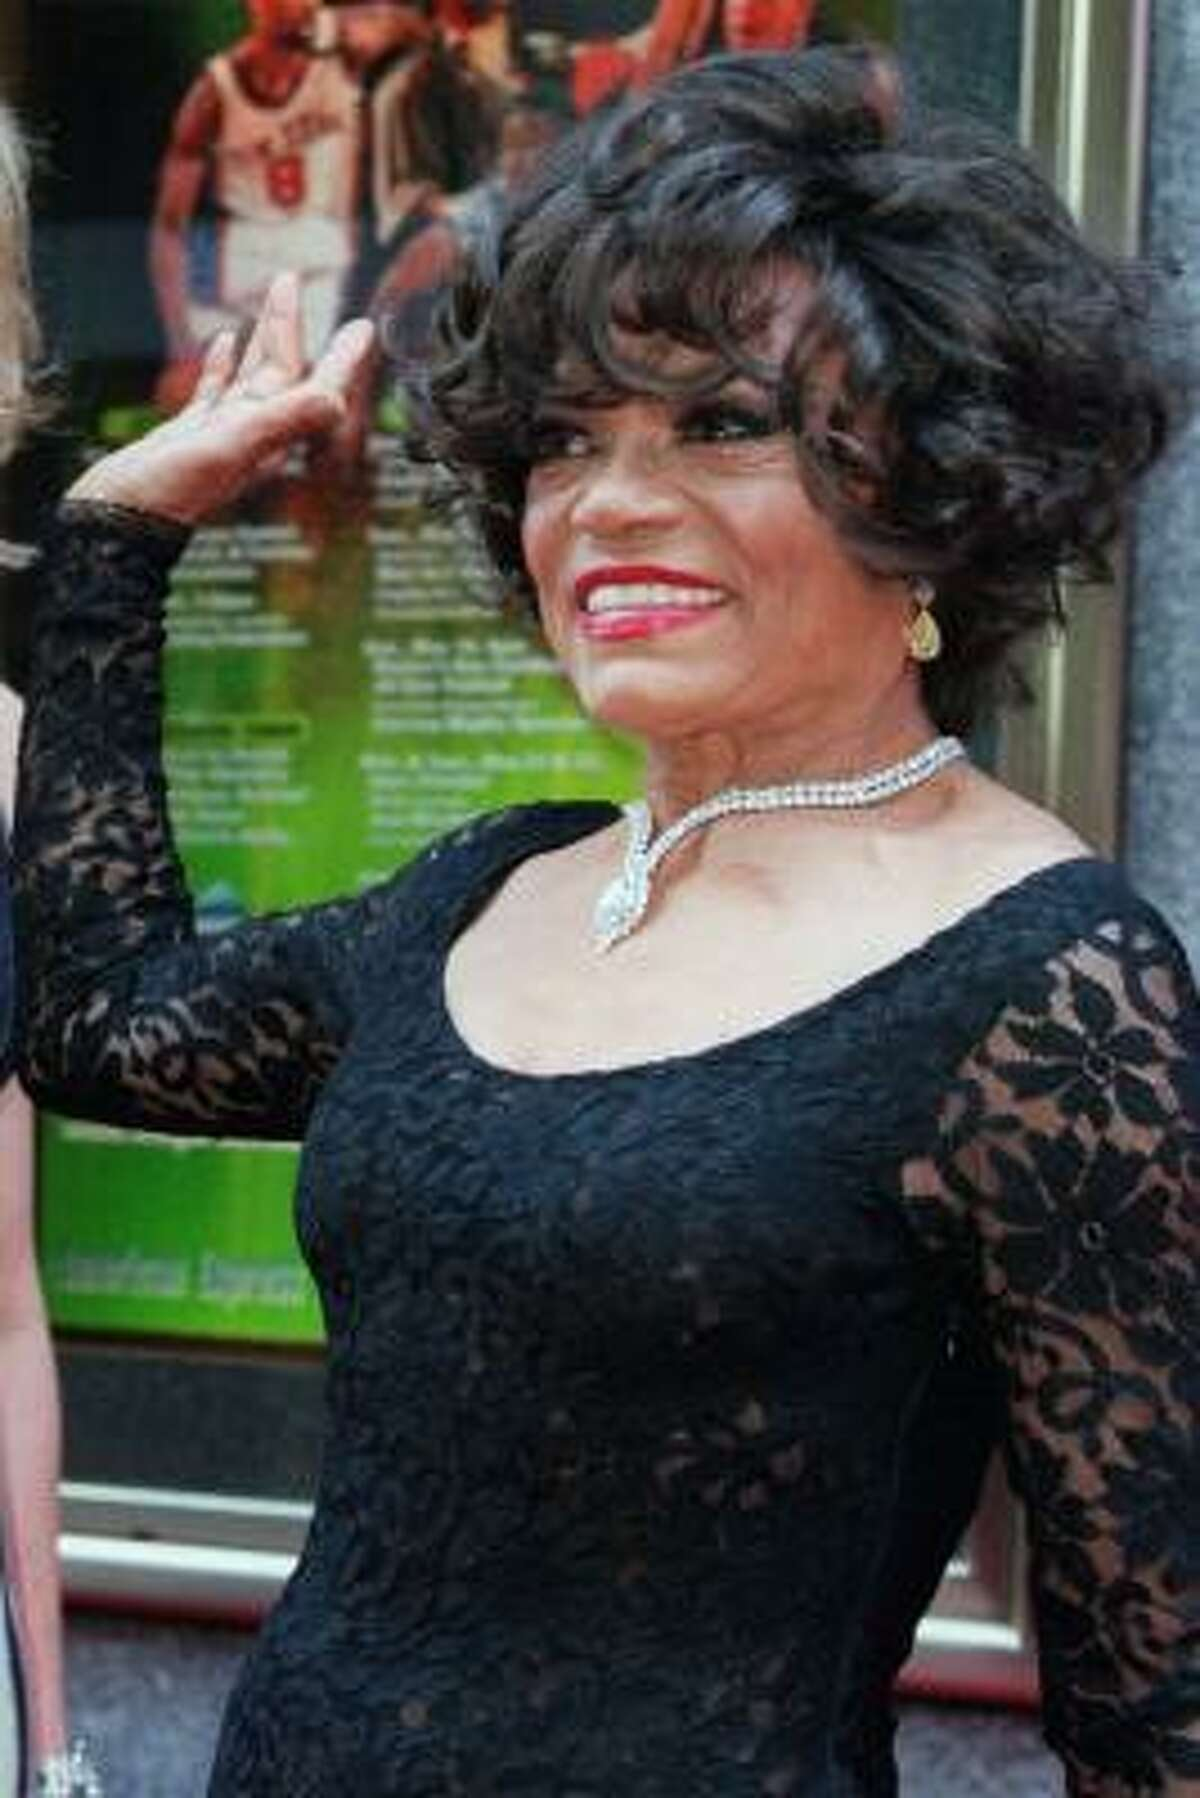 Eartha Kitt arrives for the 54th Annual Tony Awards Sunday, June 4, 2000, at New York's Radio City Music Hall. Kitt is nominated for a Tony Award in the Best Performance by a Featured Actress in a Musical category for her role as Dolores in 'The Wild Party.'